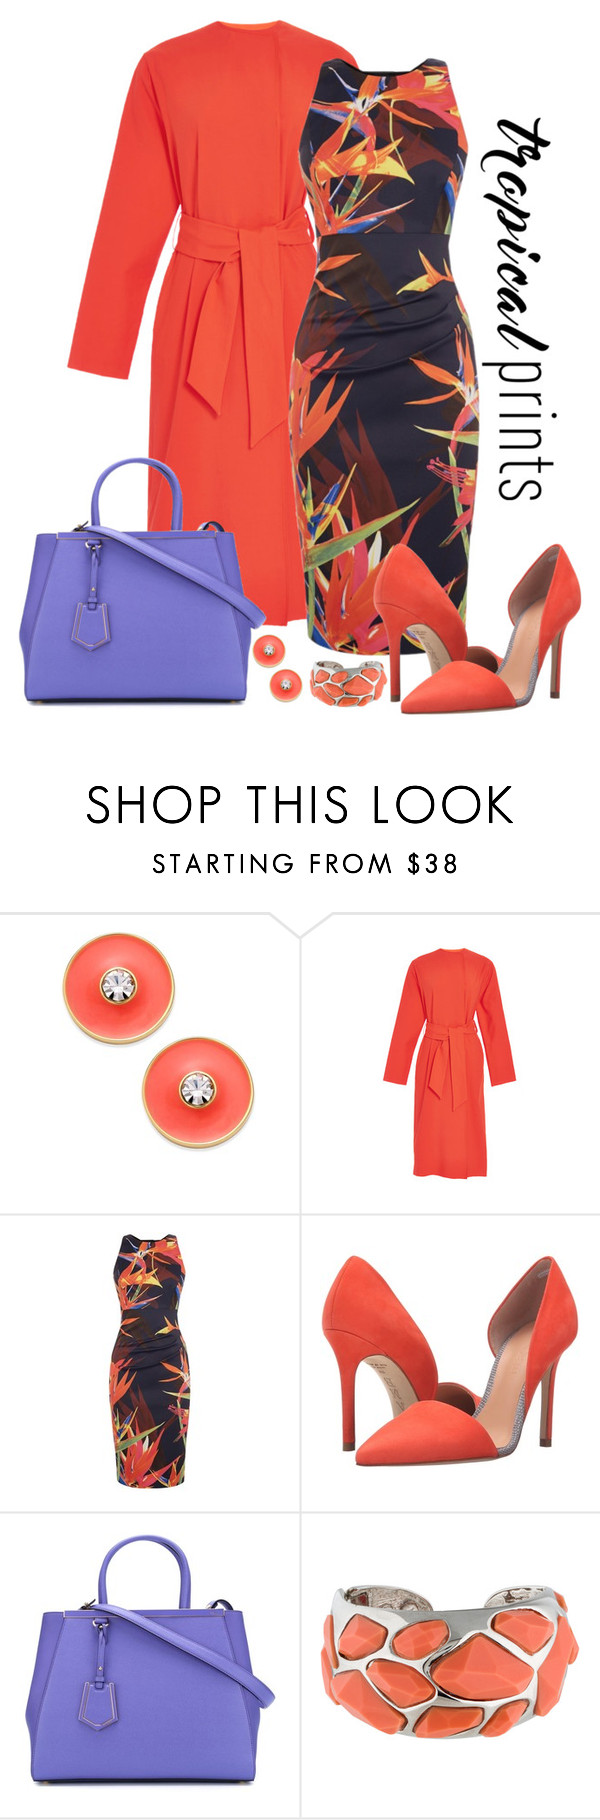 """""""Karen Millen Silhouette Floral Dress Look"""" by romaboots-1 ❤ liked on Polyvore featuring Kate Spade, Cédric Charlier, Karen Millen, L.A.M.B., Fendi and Kenneth Jay Lane"""